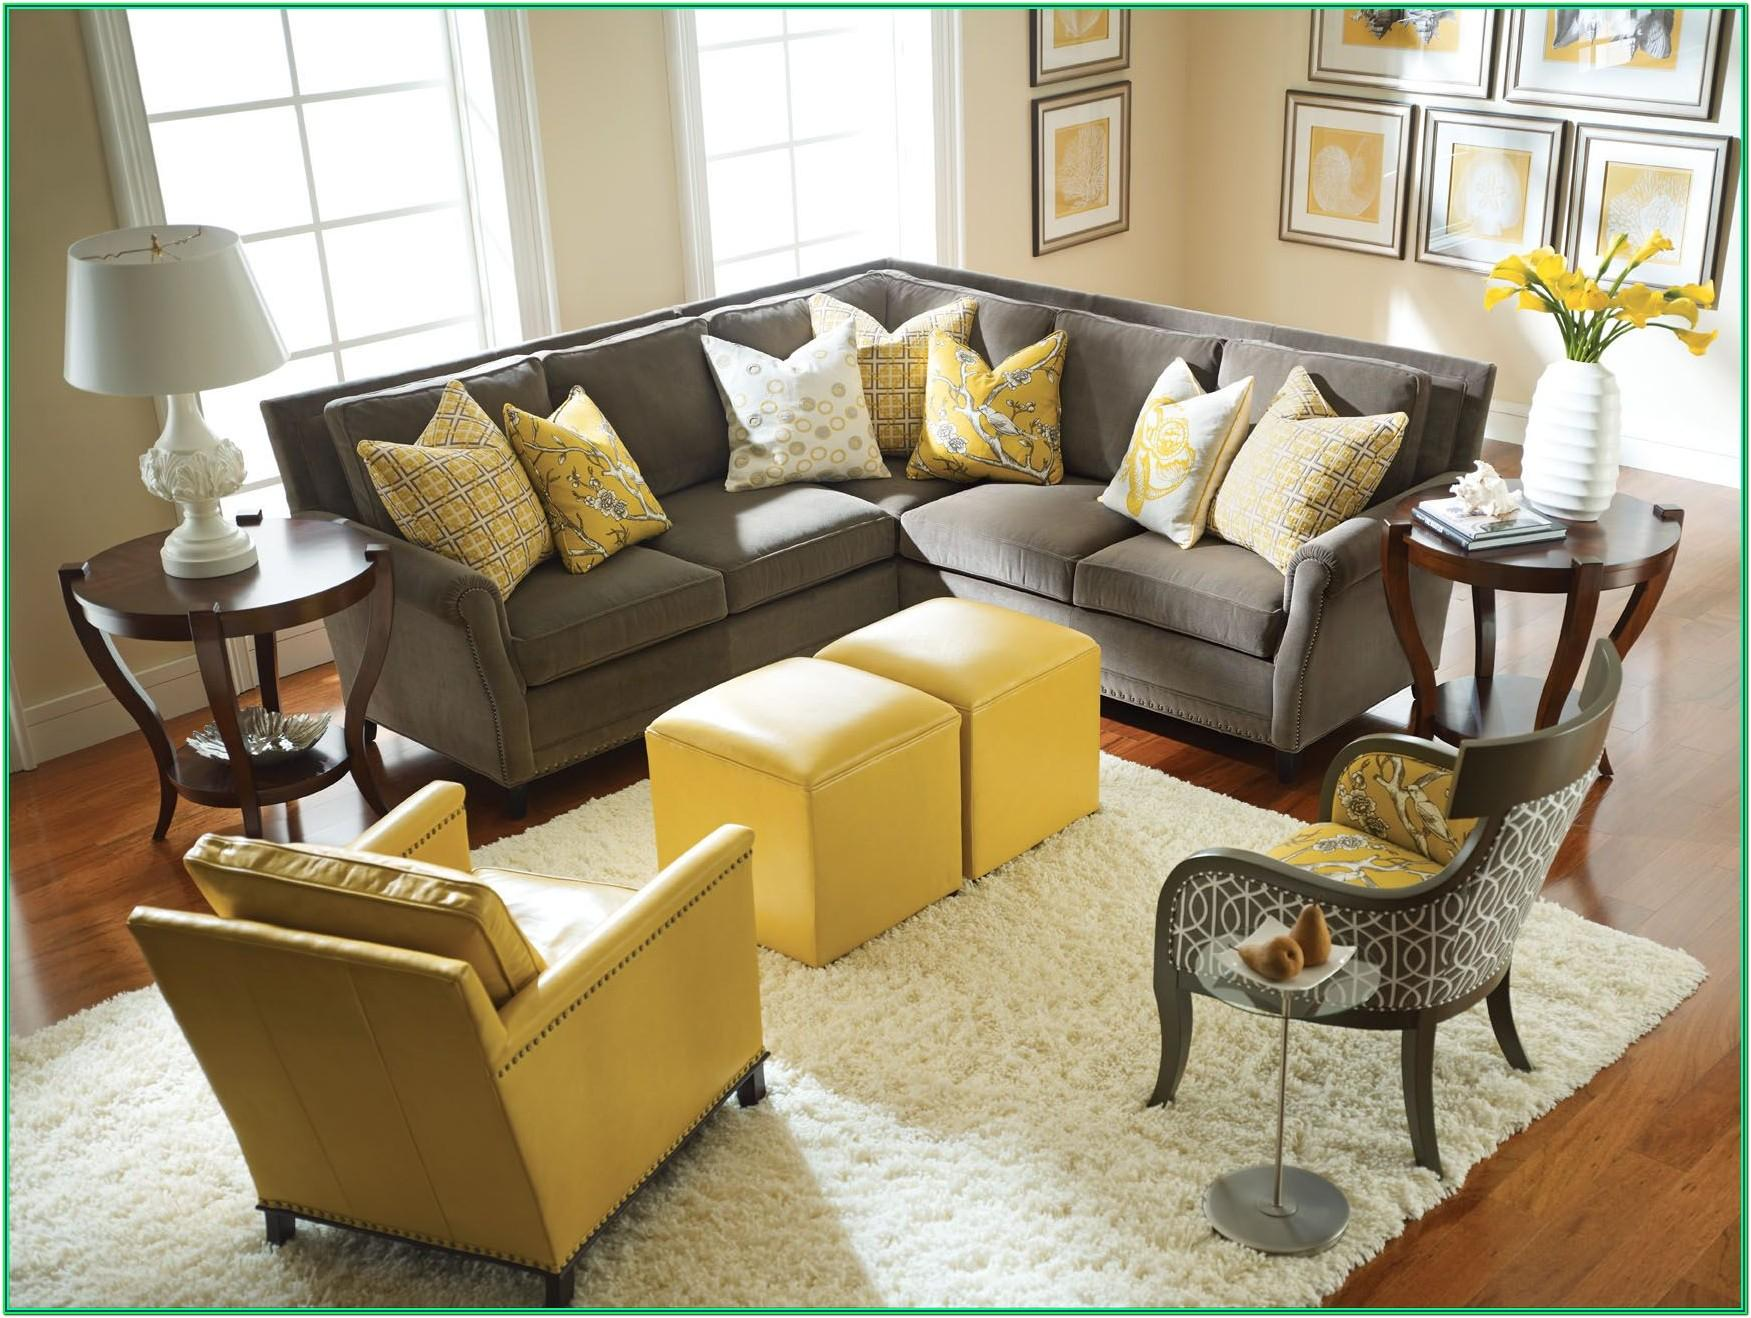 Living Room Ideas With Yellow Accents